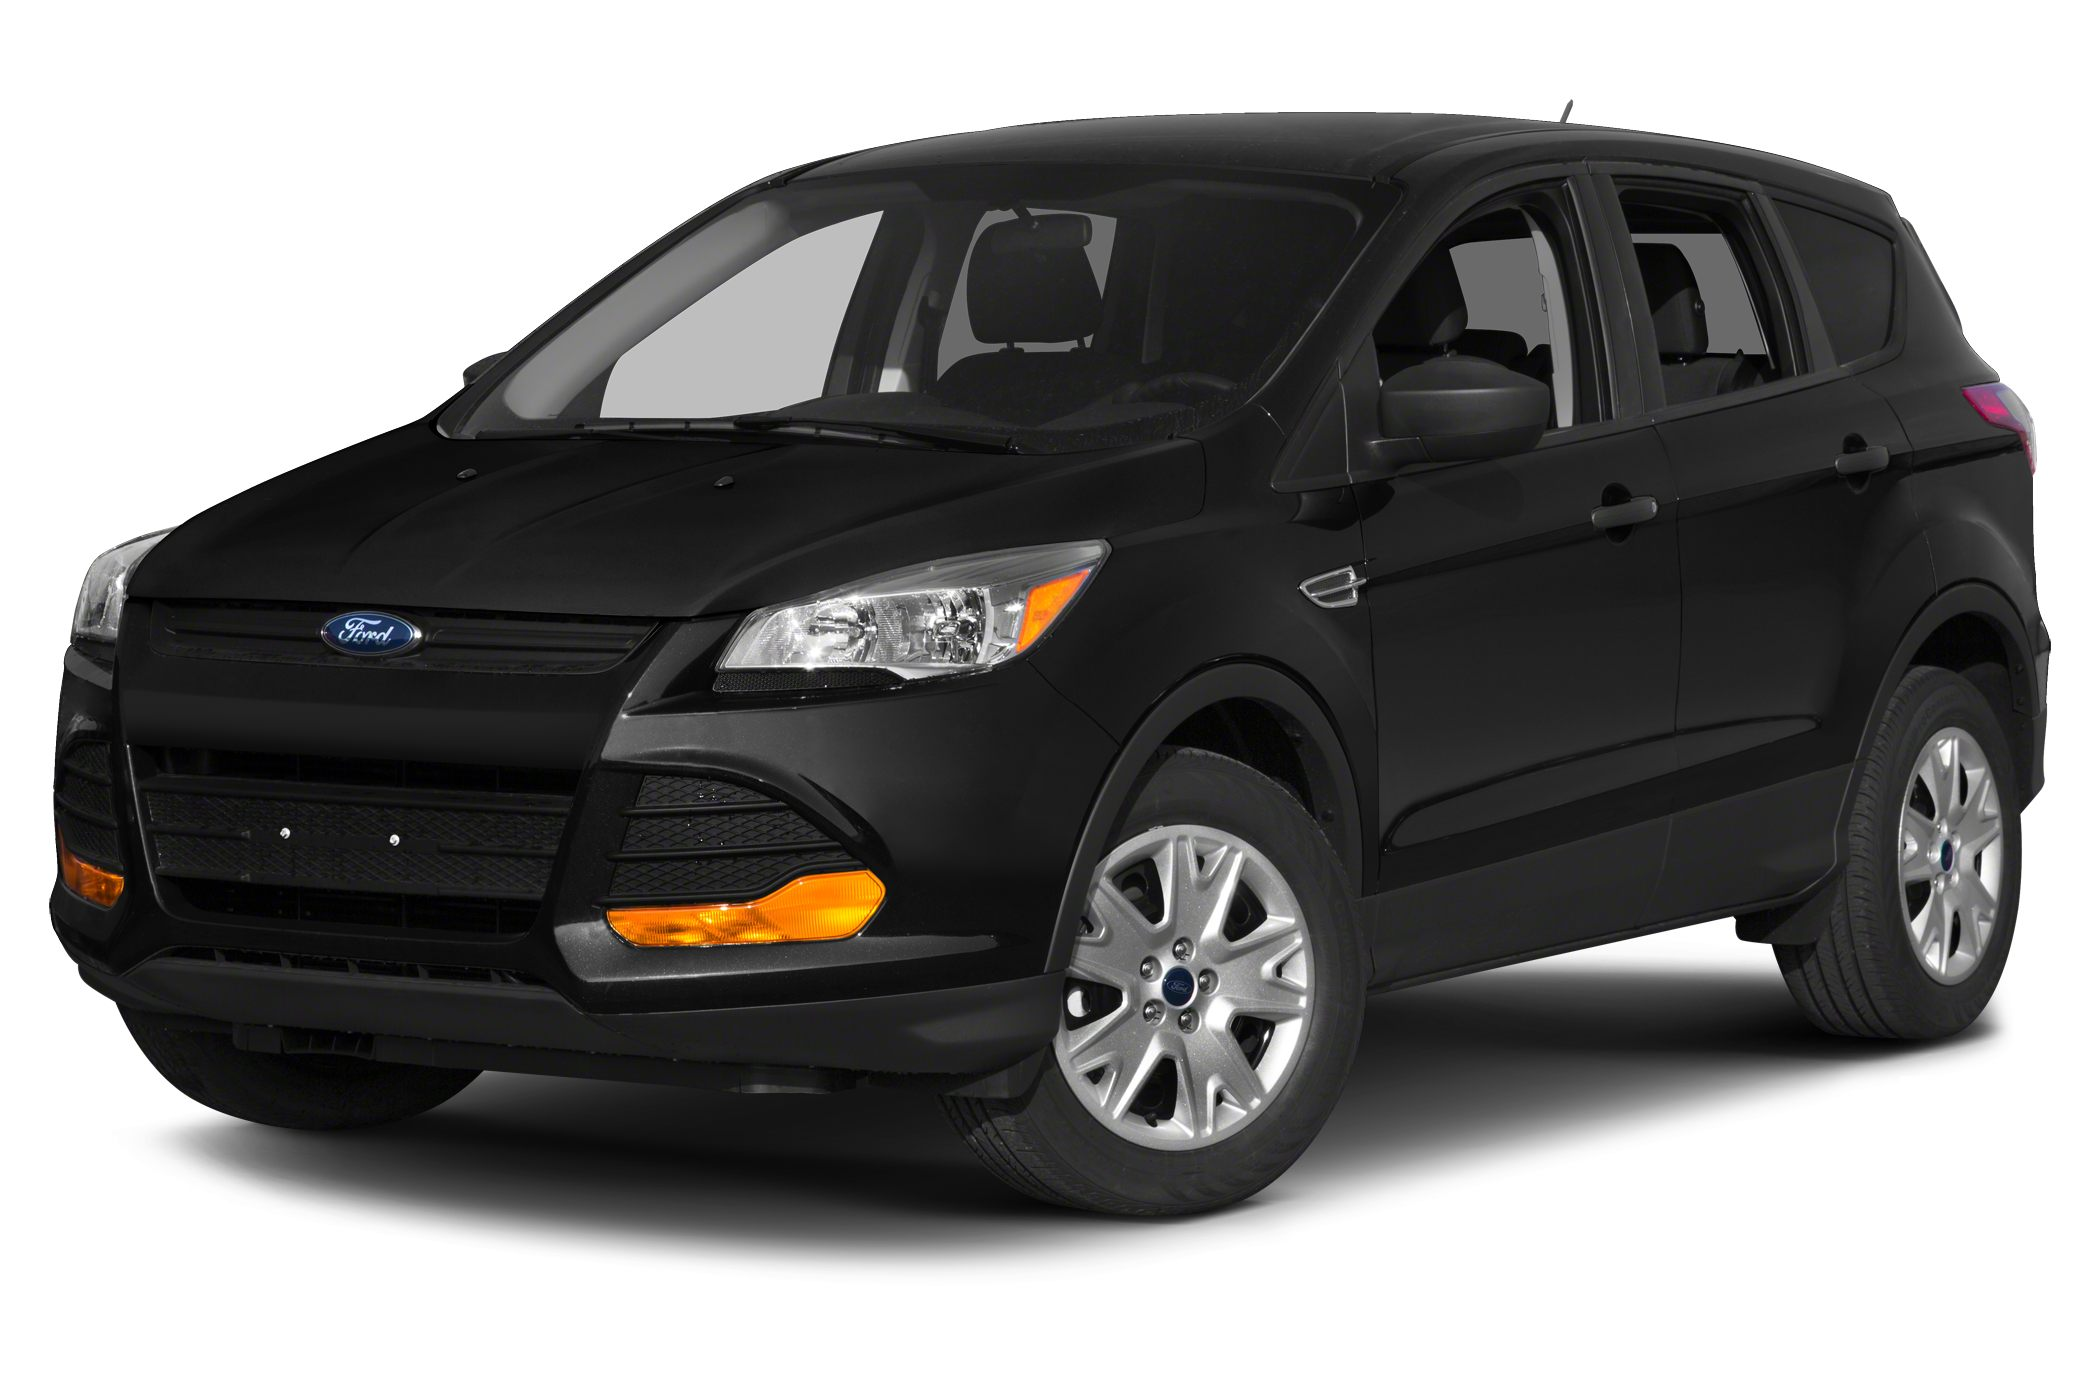 2014 Ford Escape SE SUV for sale in Wabash for $23,900 with 10,001 miles.